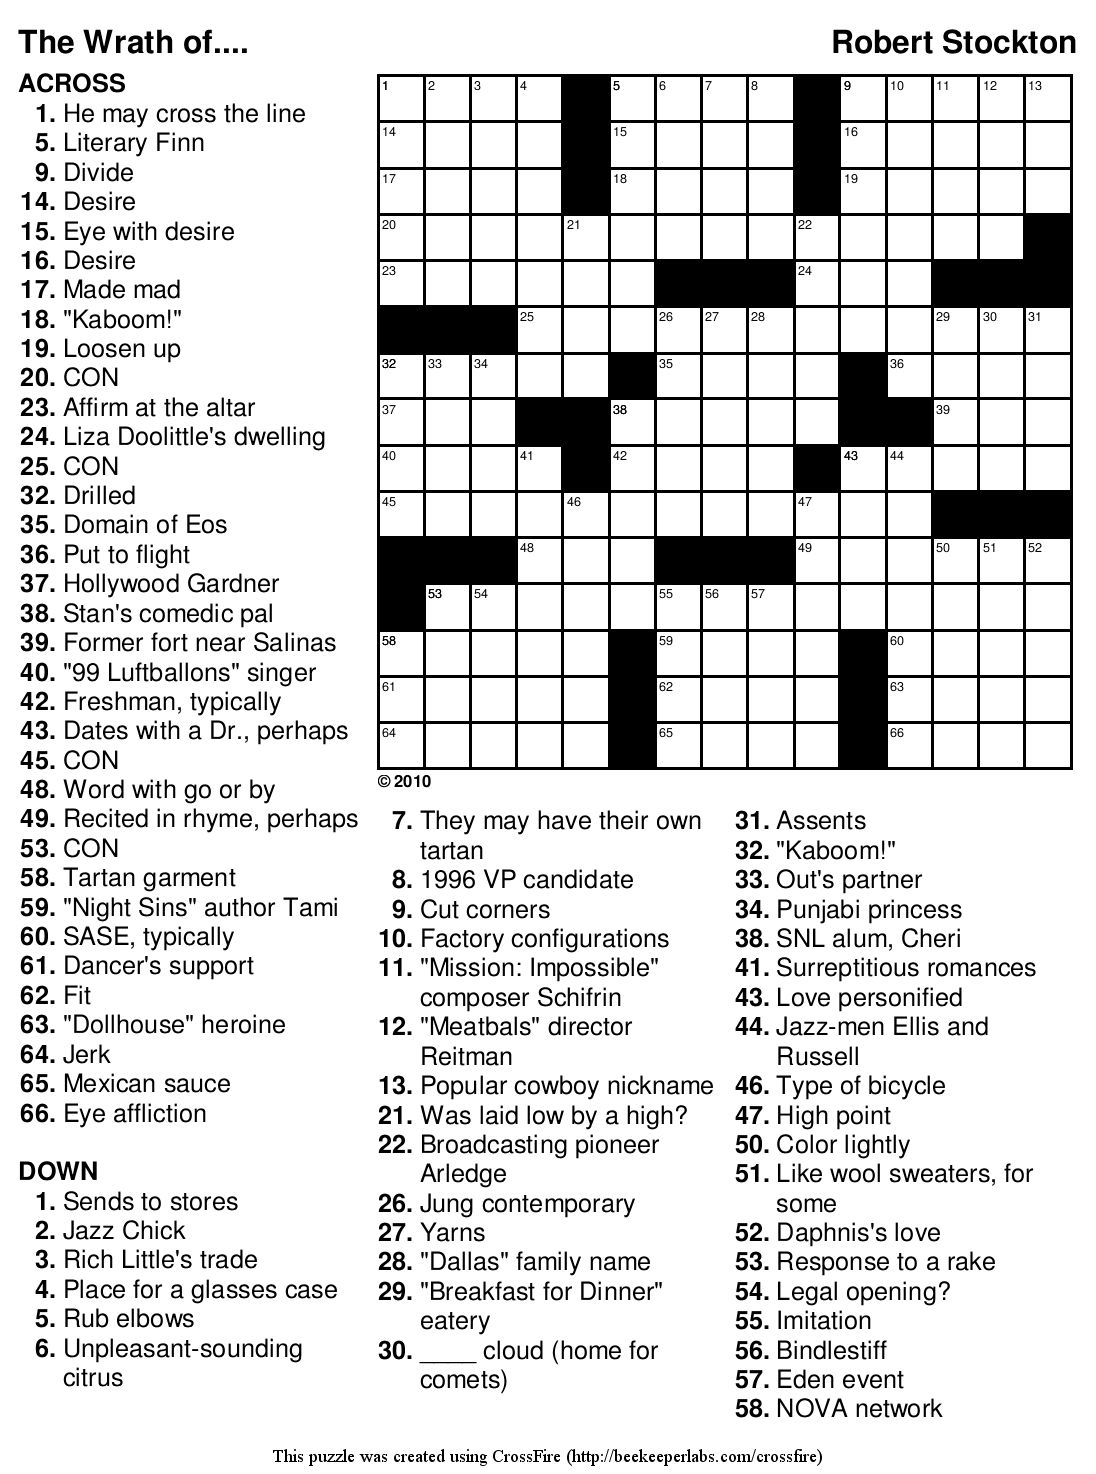 Marvelous Crossword Puzzles Easy Printable Free Org | Chas's Board - Crossword Puzzle Maker Printable And Free